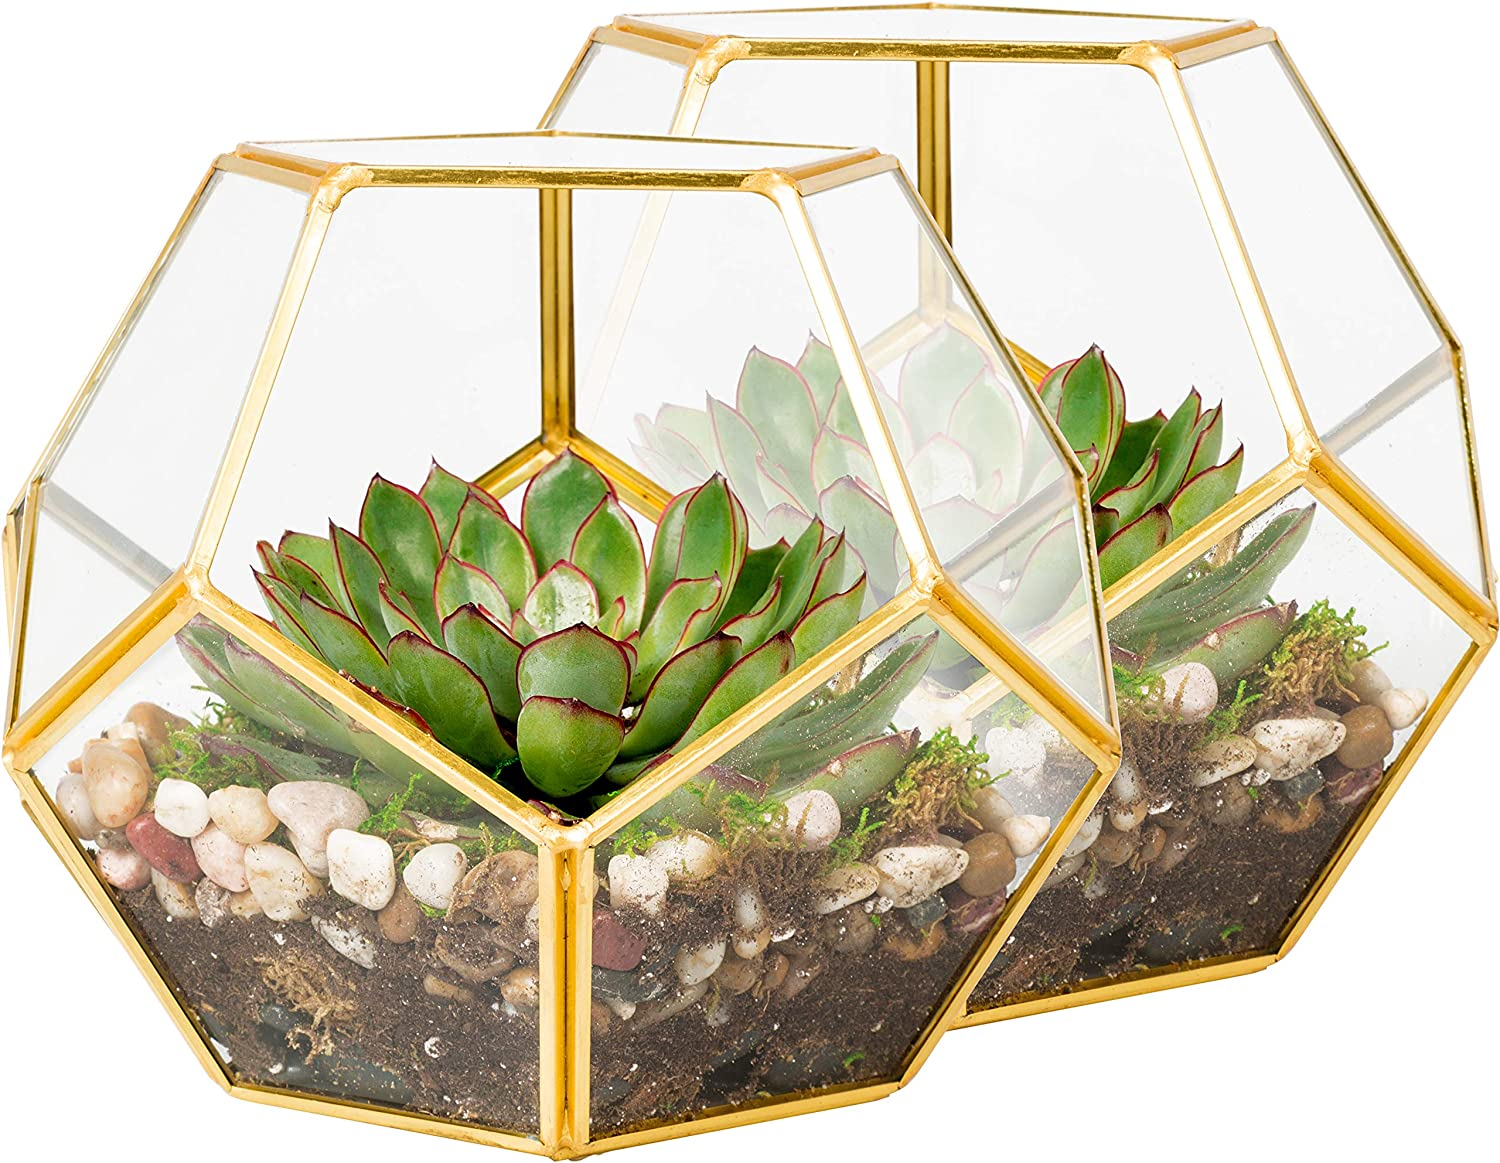 Gold,Clear 2pcs Glass Geometric Container Terrarium for Succulent /& Air Plant